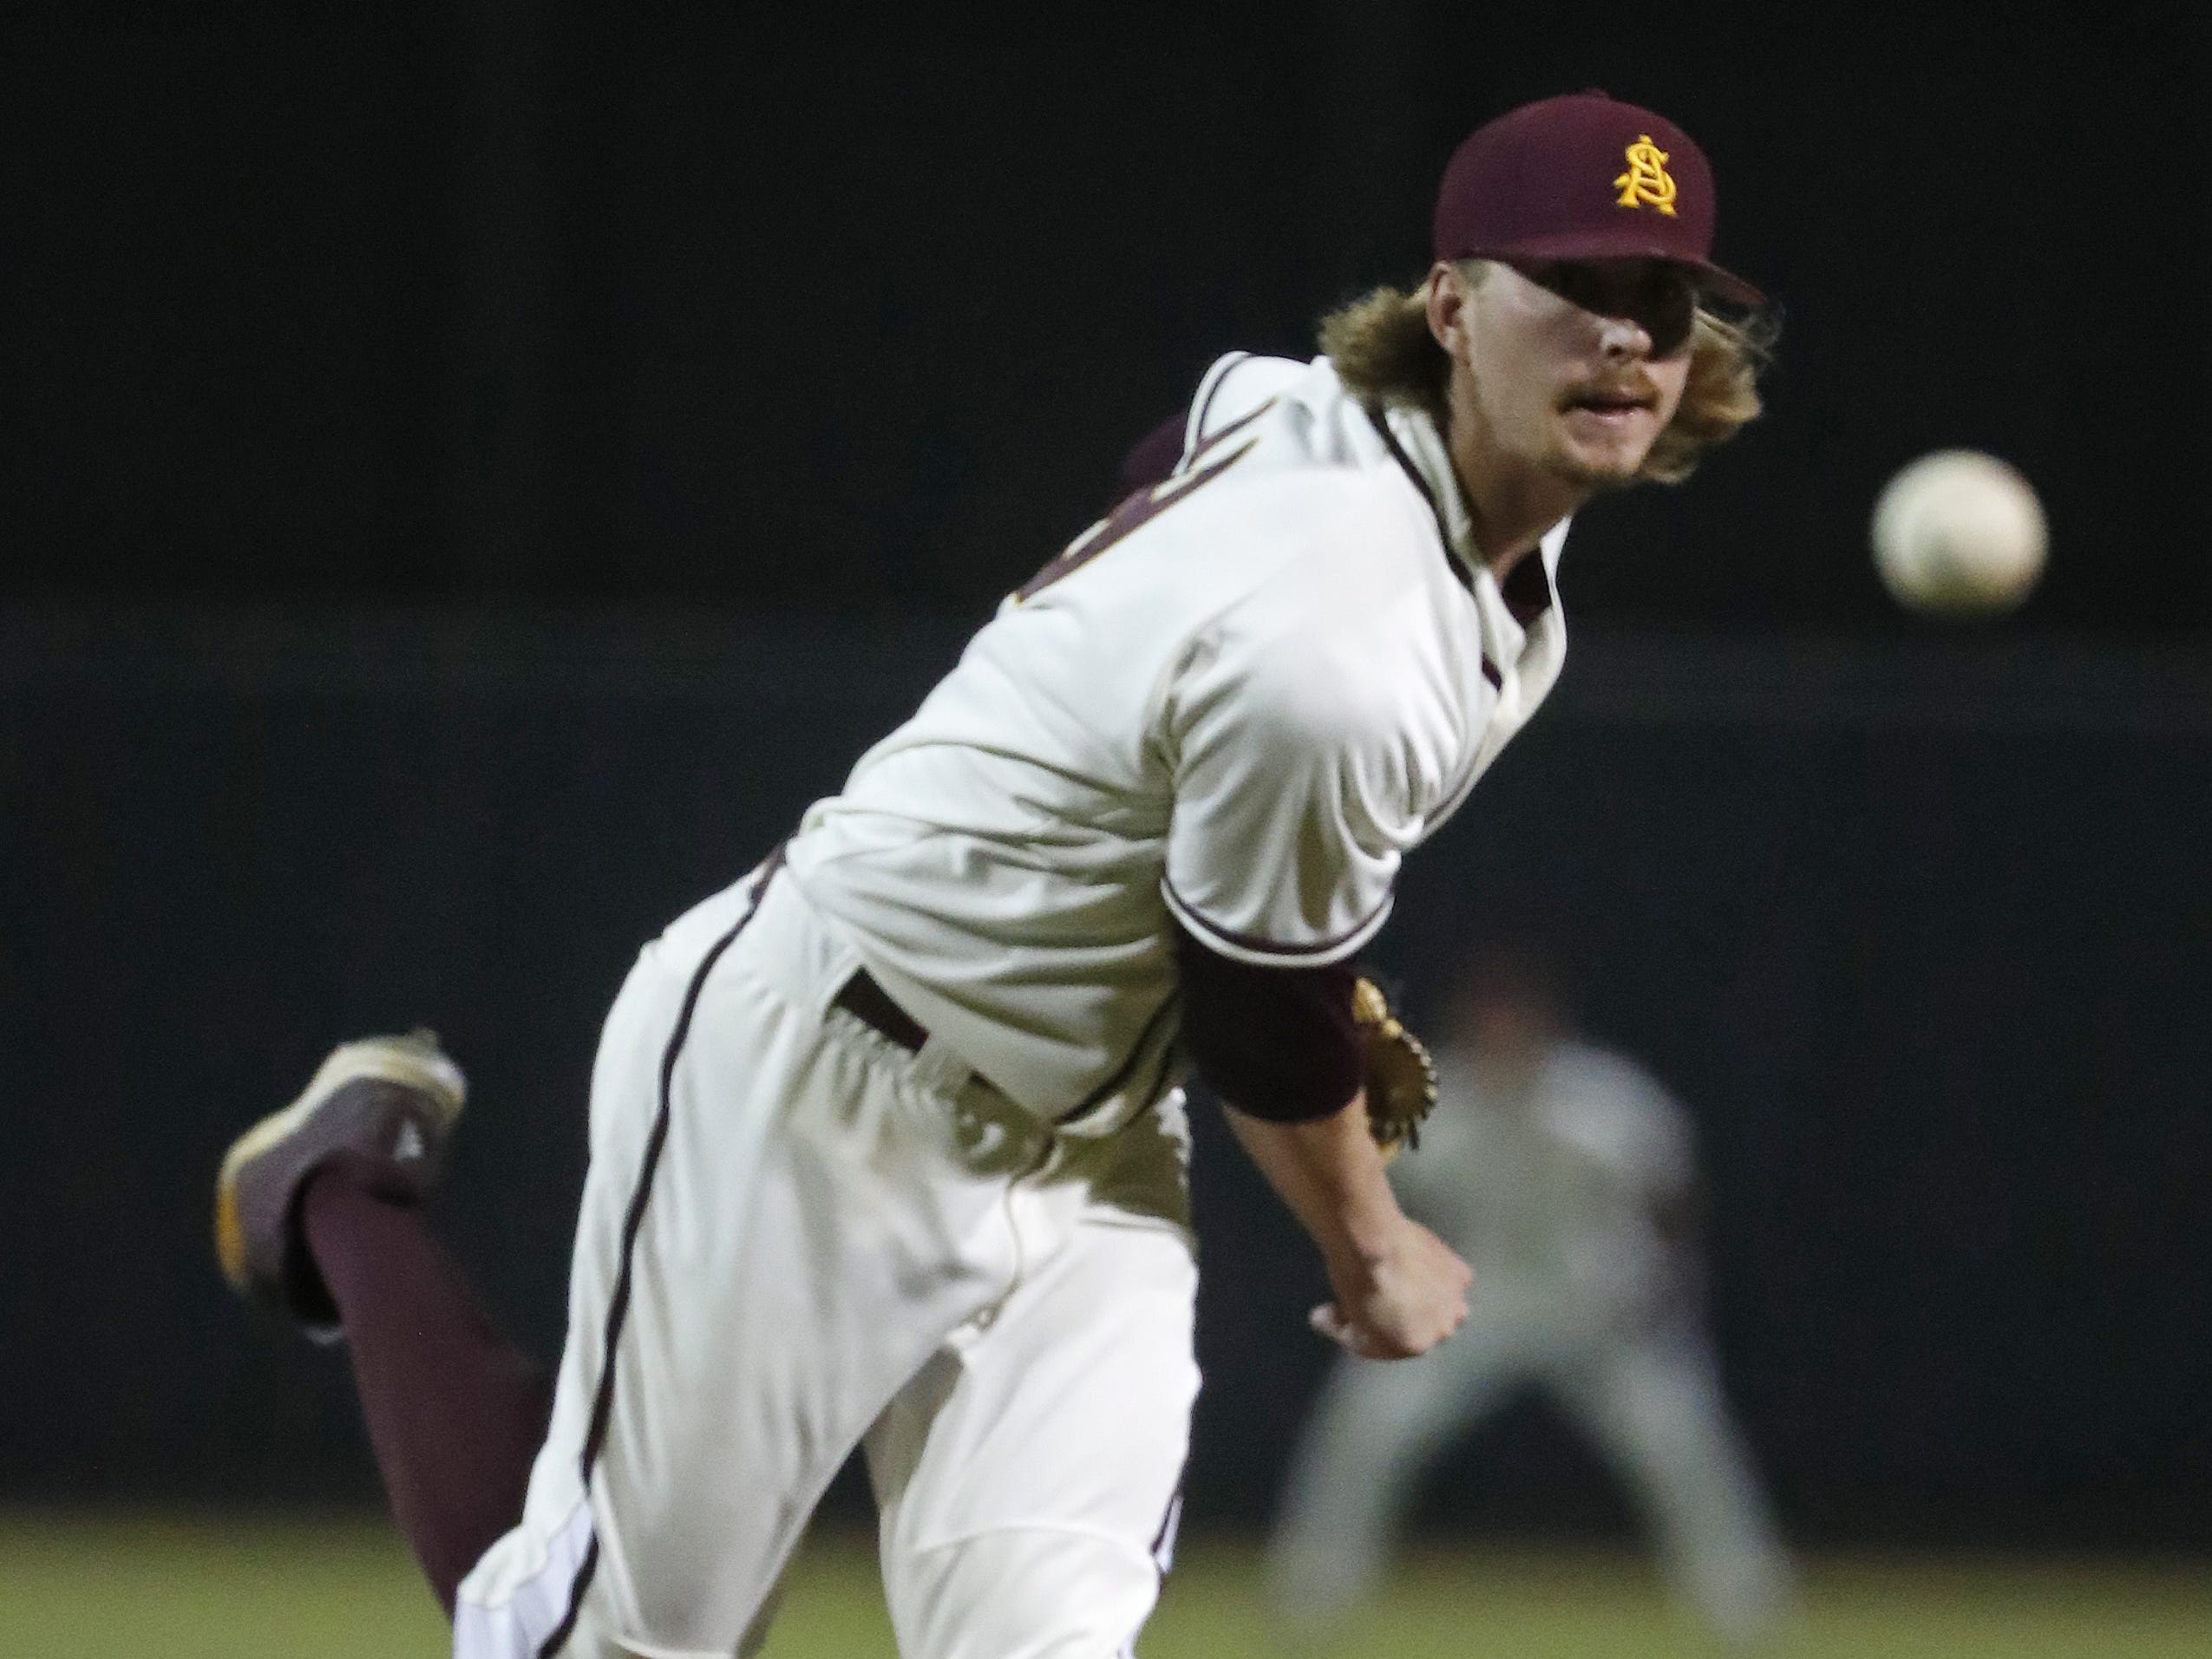 ASU's Boyd Vader Kooi (19) pitches against Arizona's Austin Wells during the first inning at Phoenix Municipal Stadium in Phoenix, Ariz. on March 30, 2019.